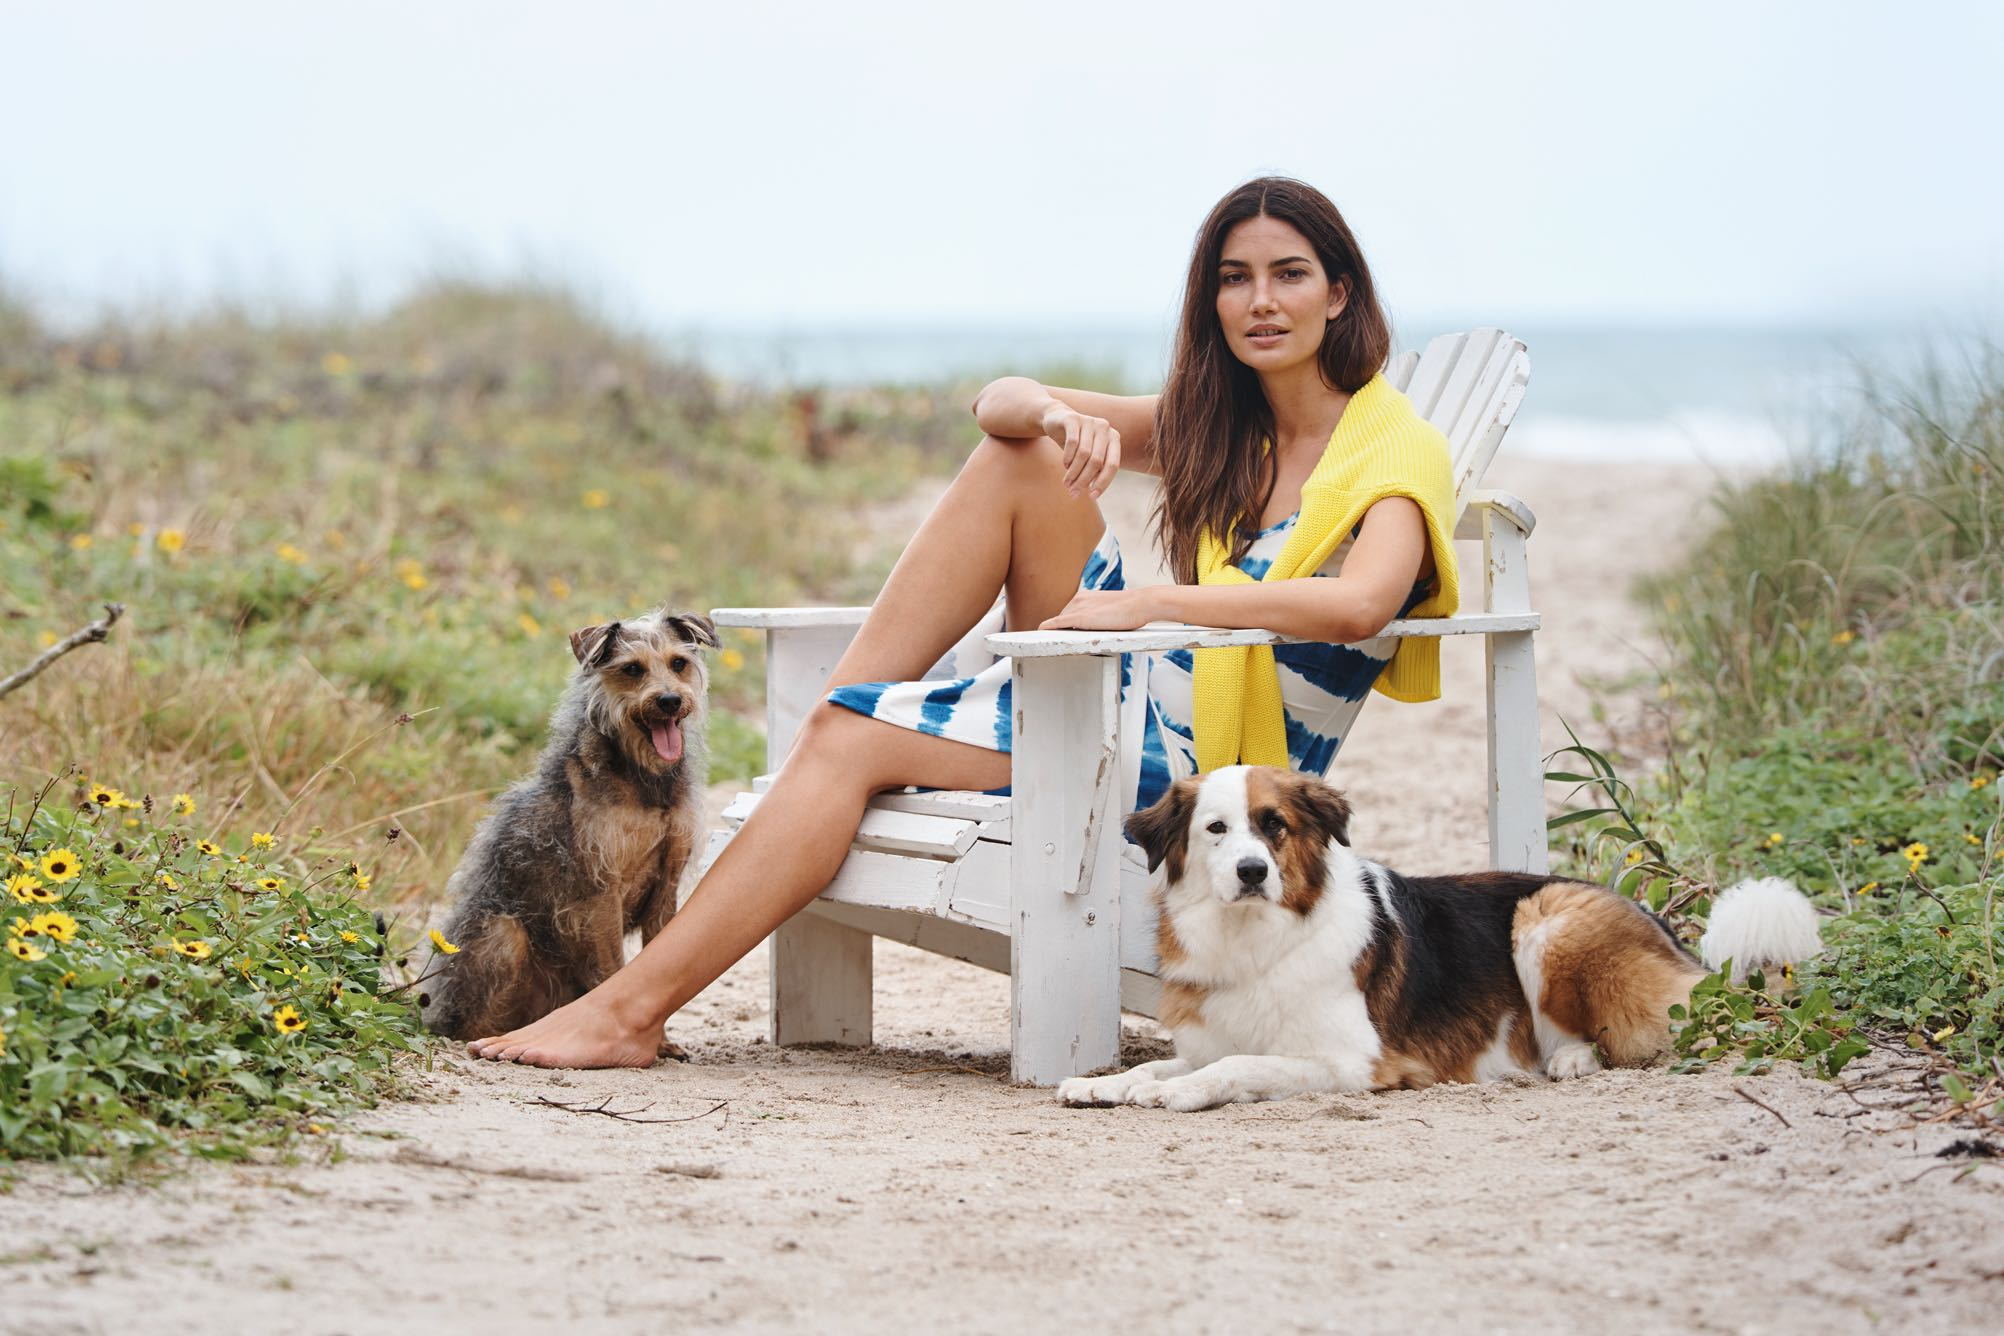 Woman in tie-dye dress sits on chair on beach with dogs.